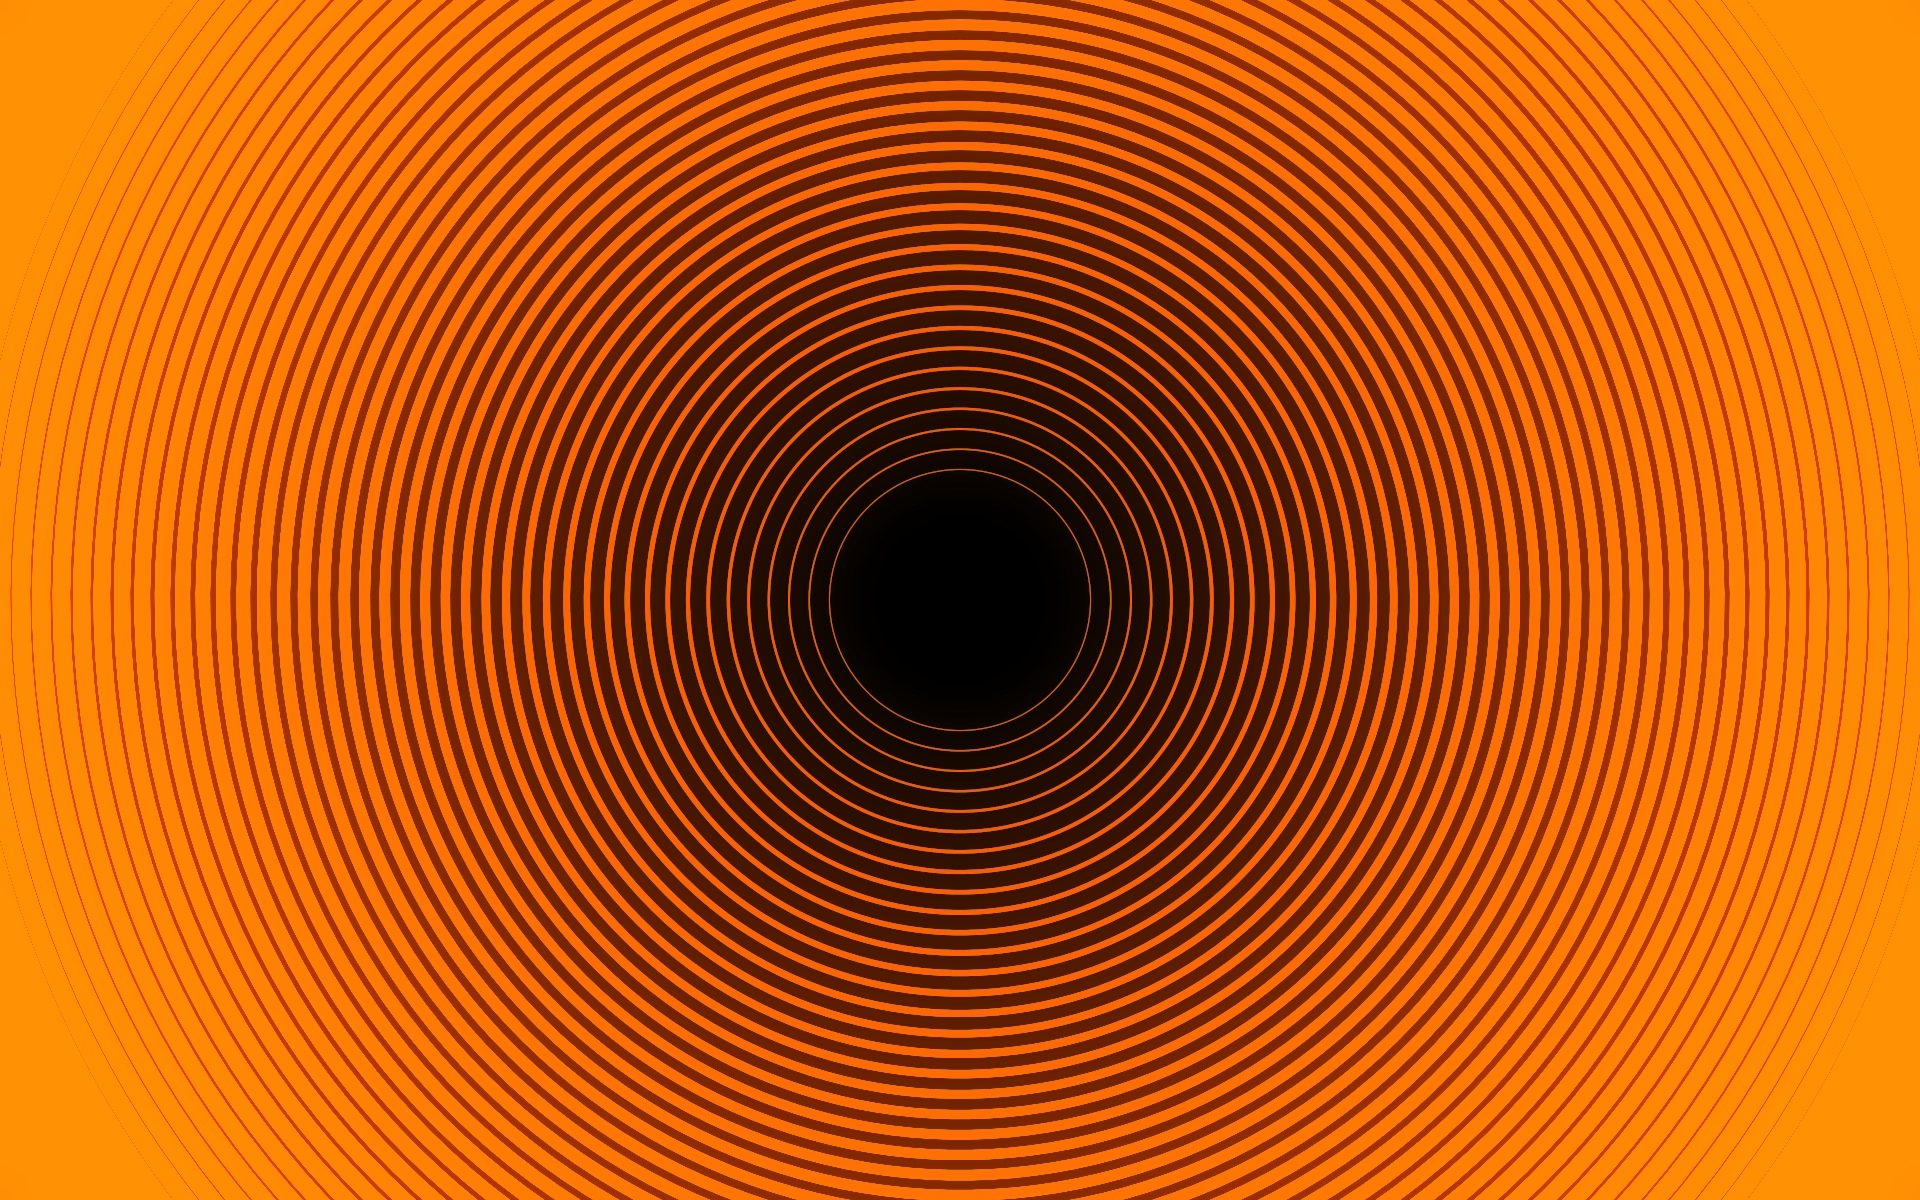 optical illusions wallpaper iphone